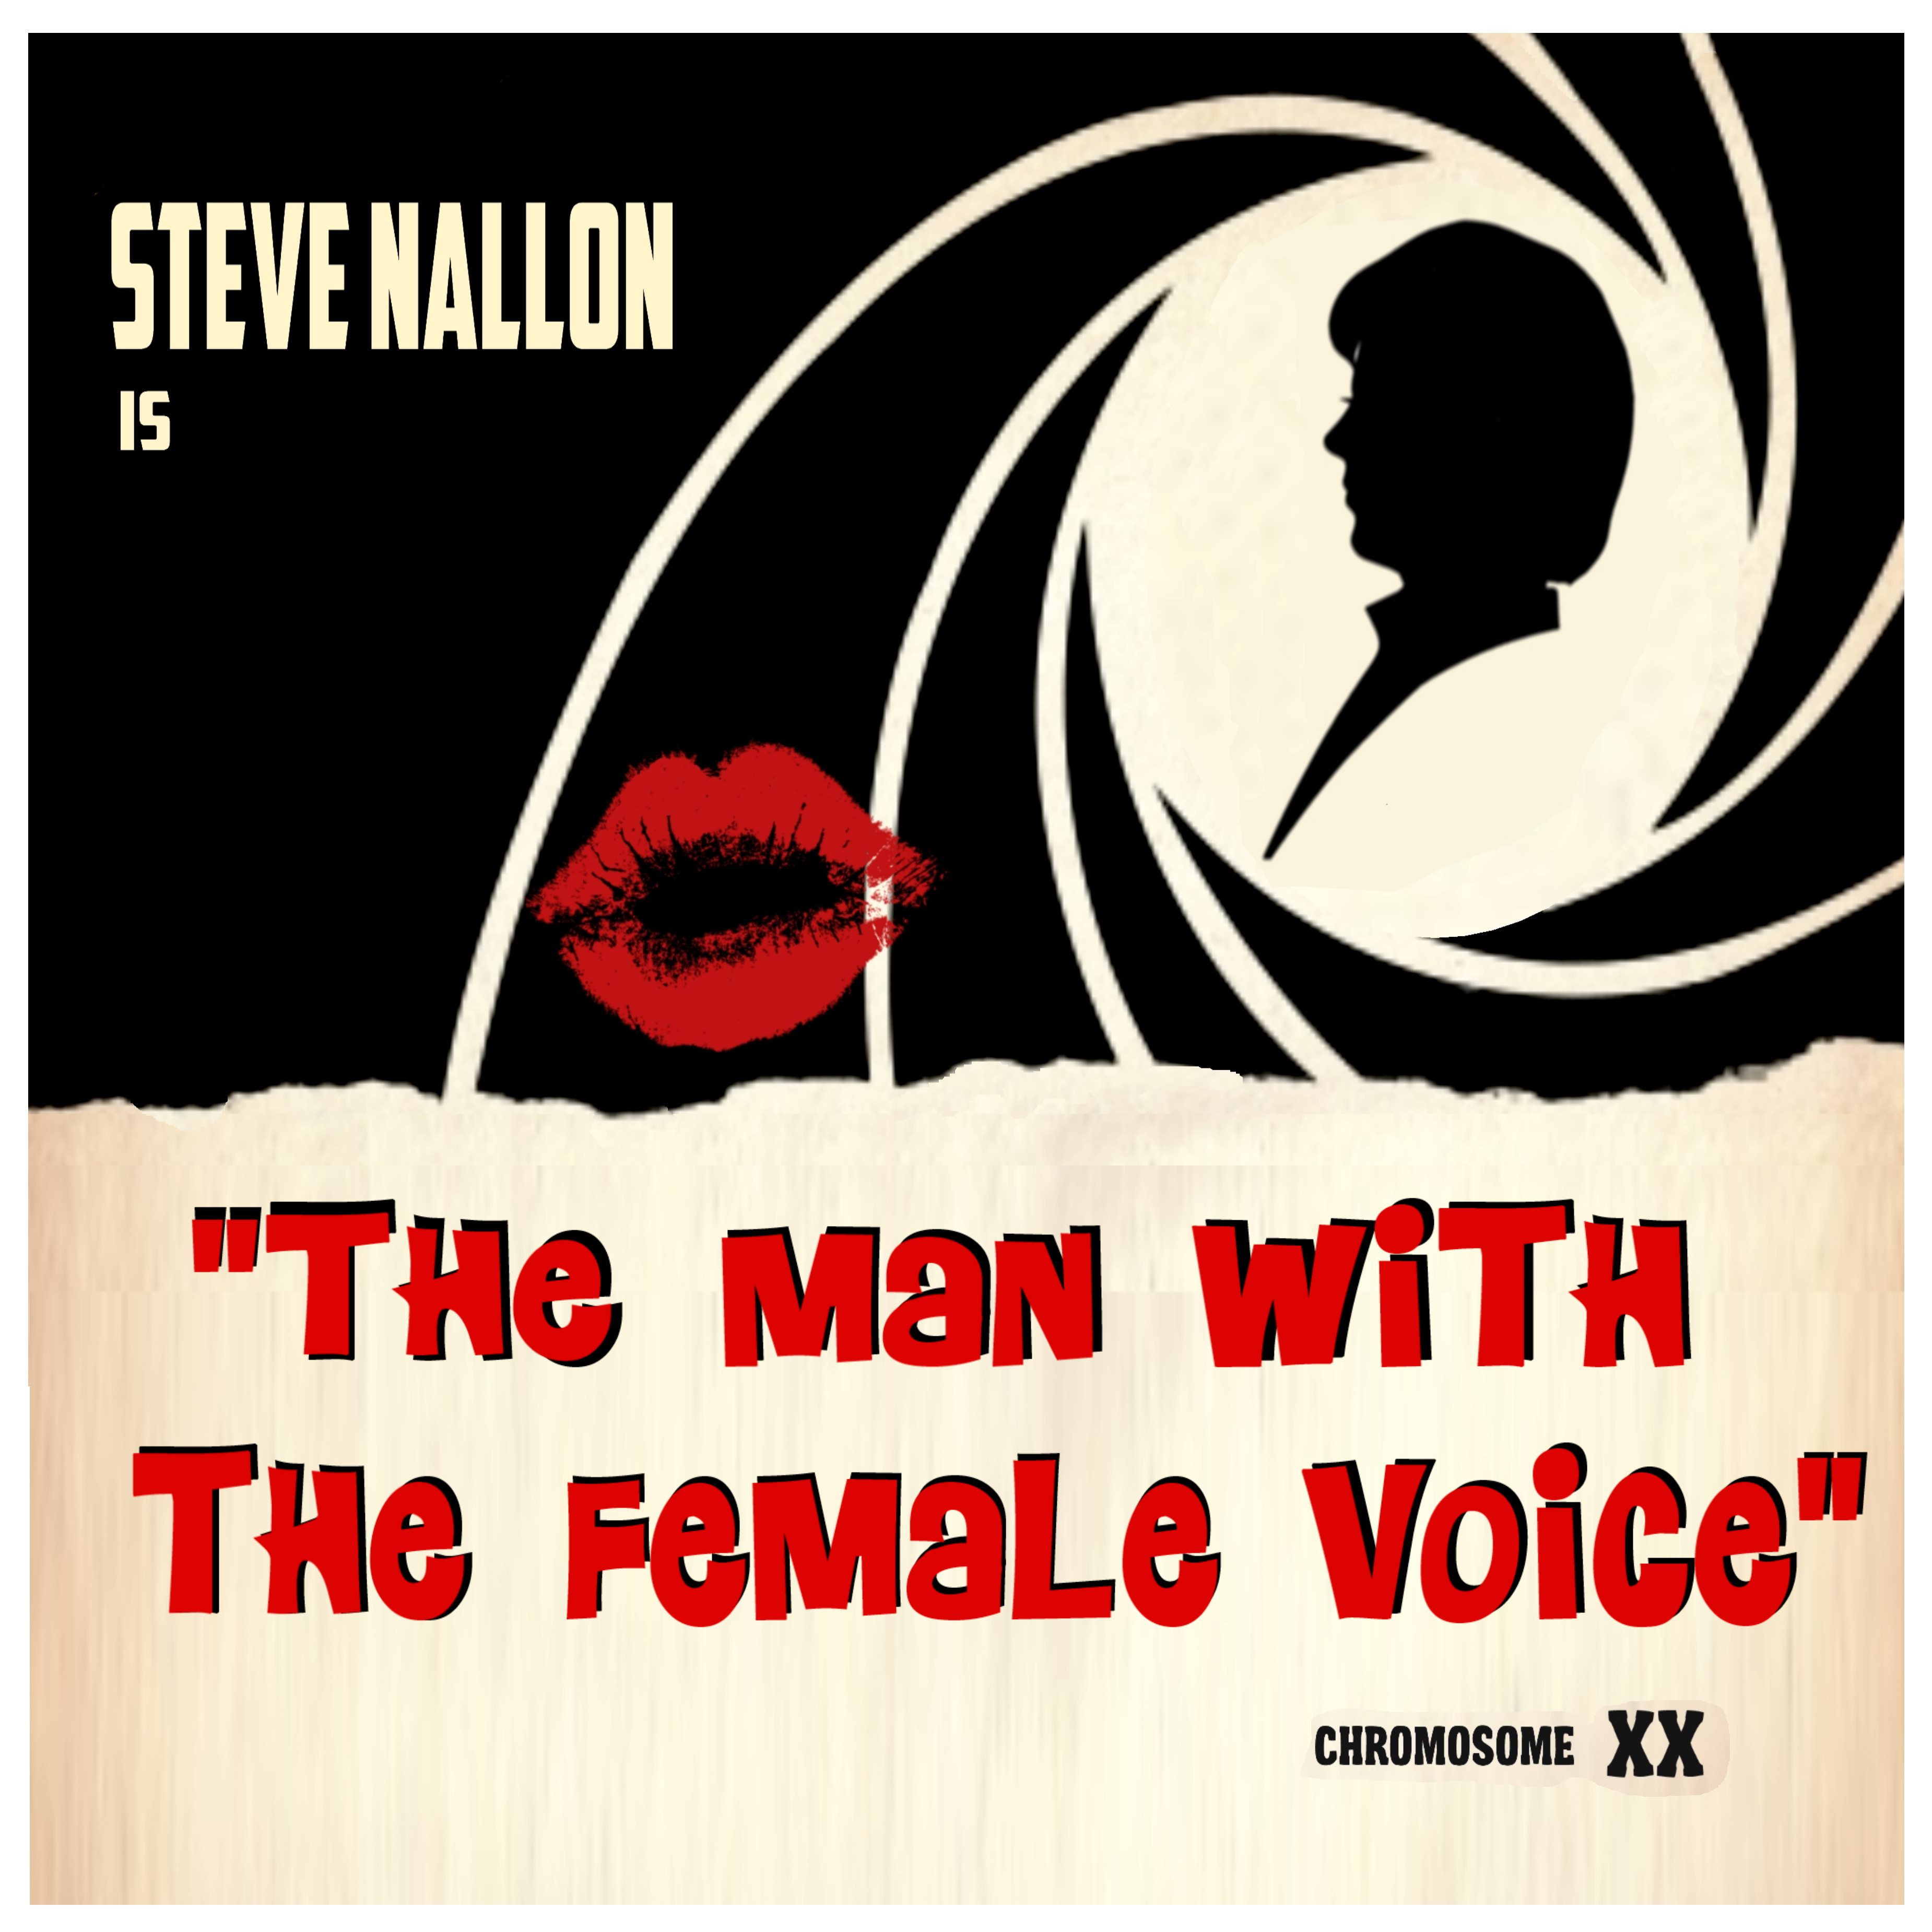 The Man with the Female Voice